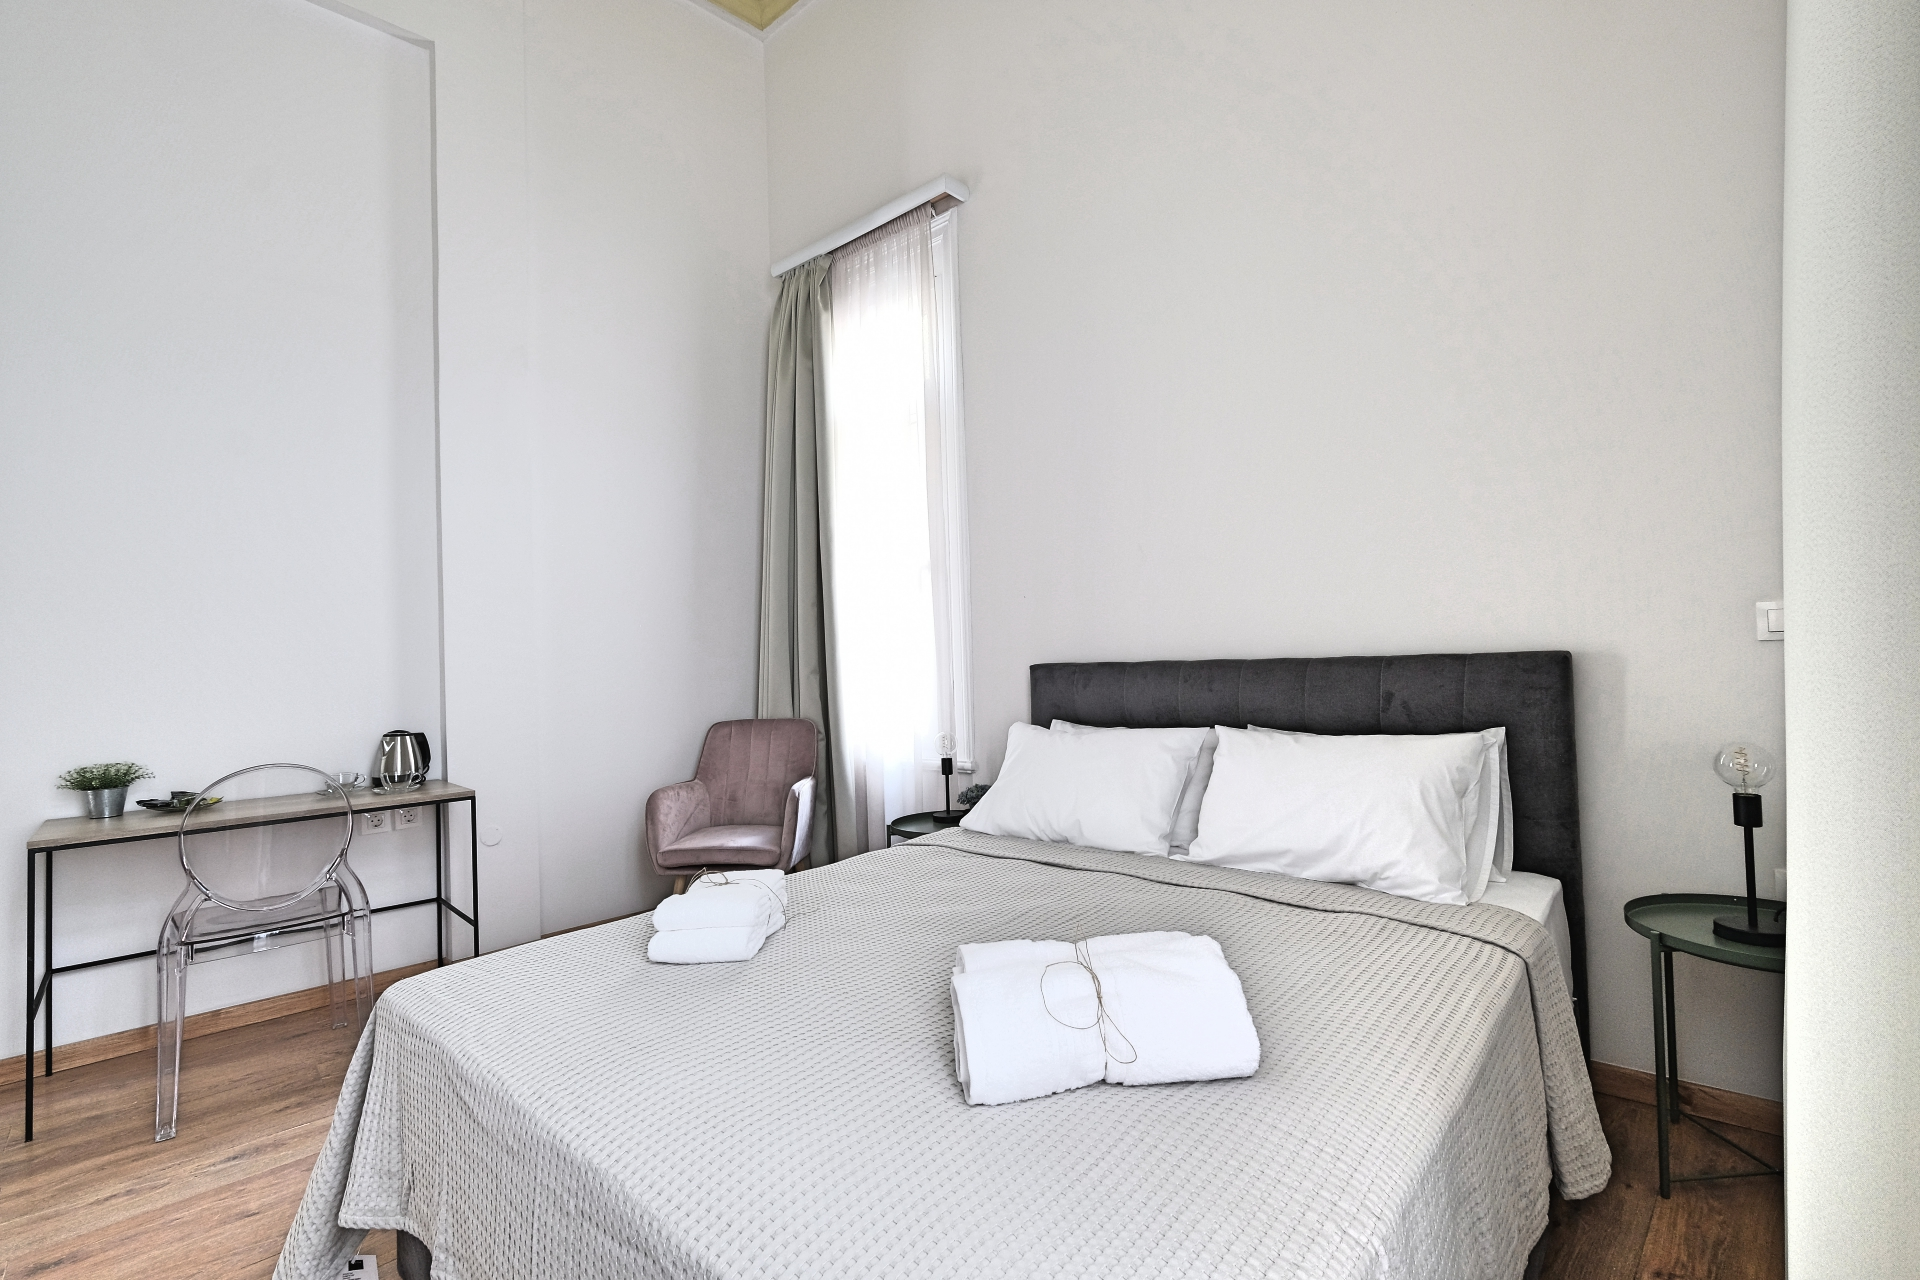 Standard Double Room with Double Bed 3 - Agora Residence - Hotel in Chios